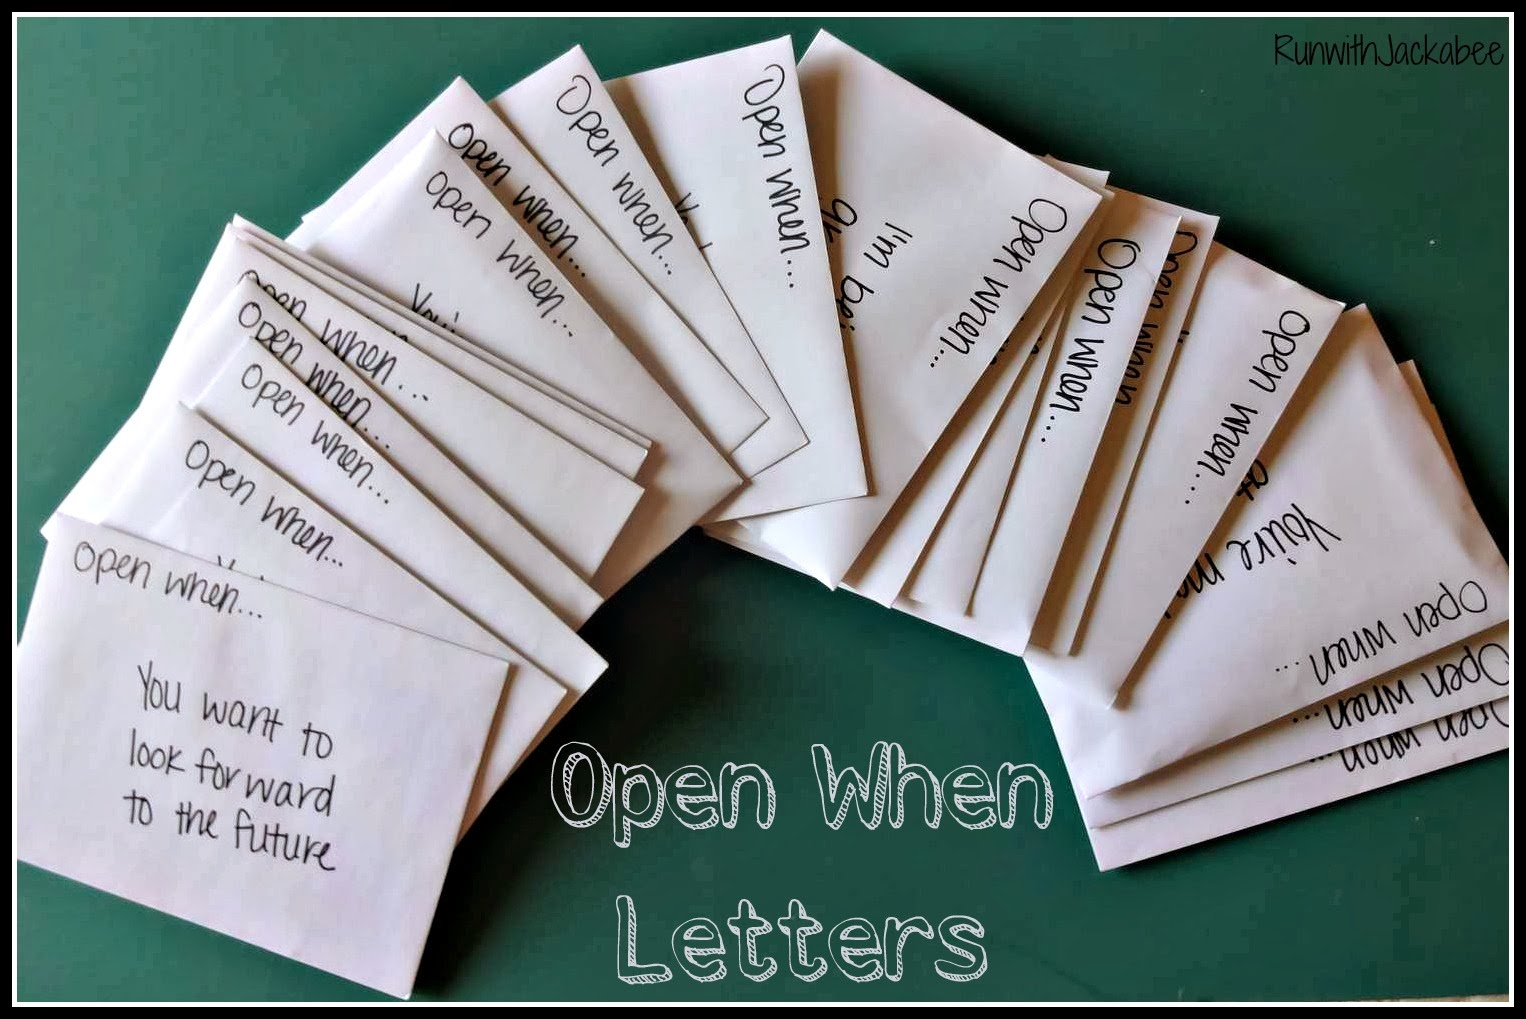 runwithjackabee: open when. letters